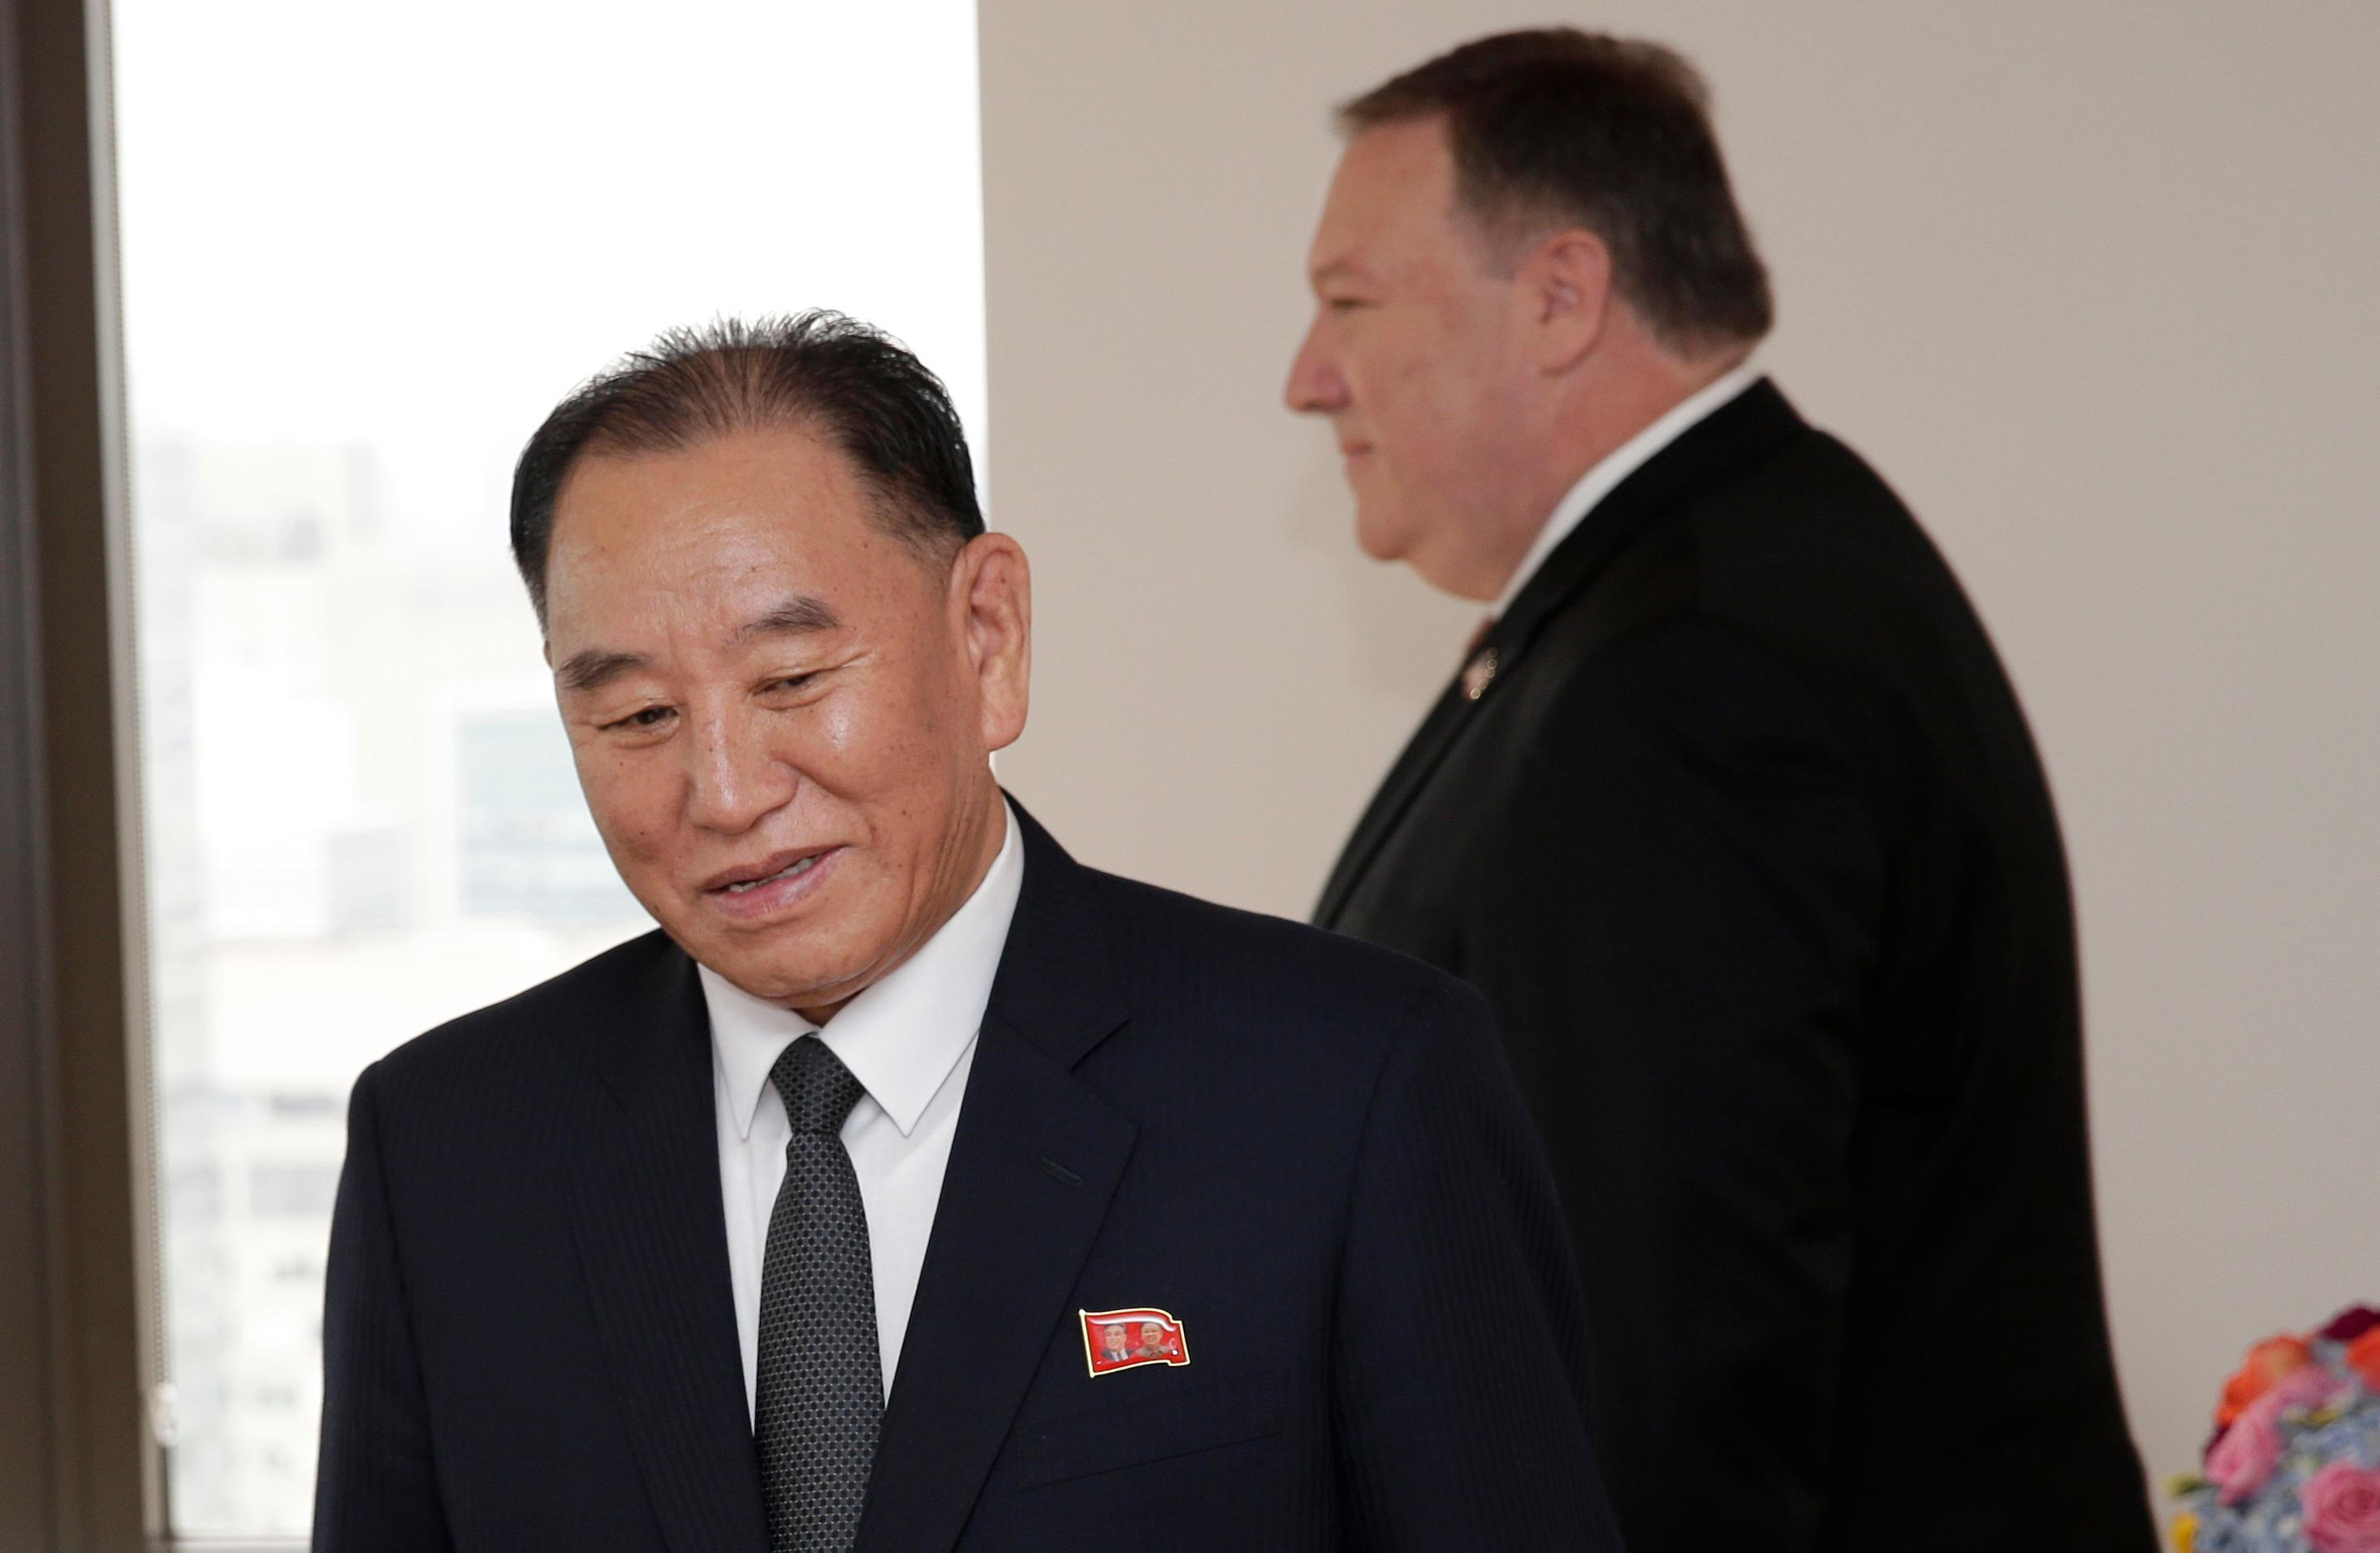 Kim Yong Chol, former North Korean military intelligence chief and one of Kim Jong Un's closest aides, left, and U.S. Secretary of State Mike Pompeo take their places at the table before a meeting, Thursday, May 31, 2018, in New York. (AP Photo/Seth Wenig)